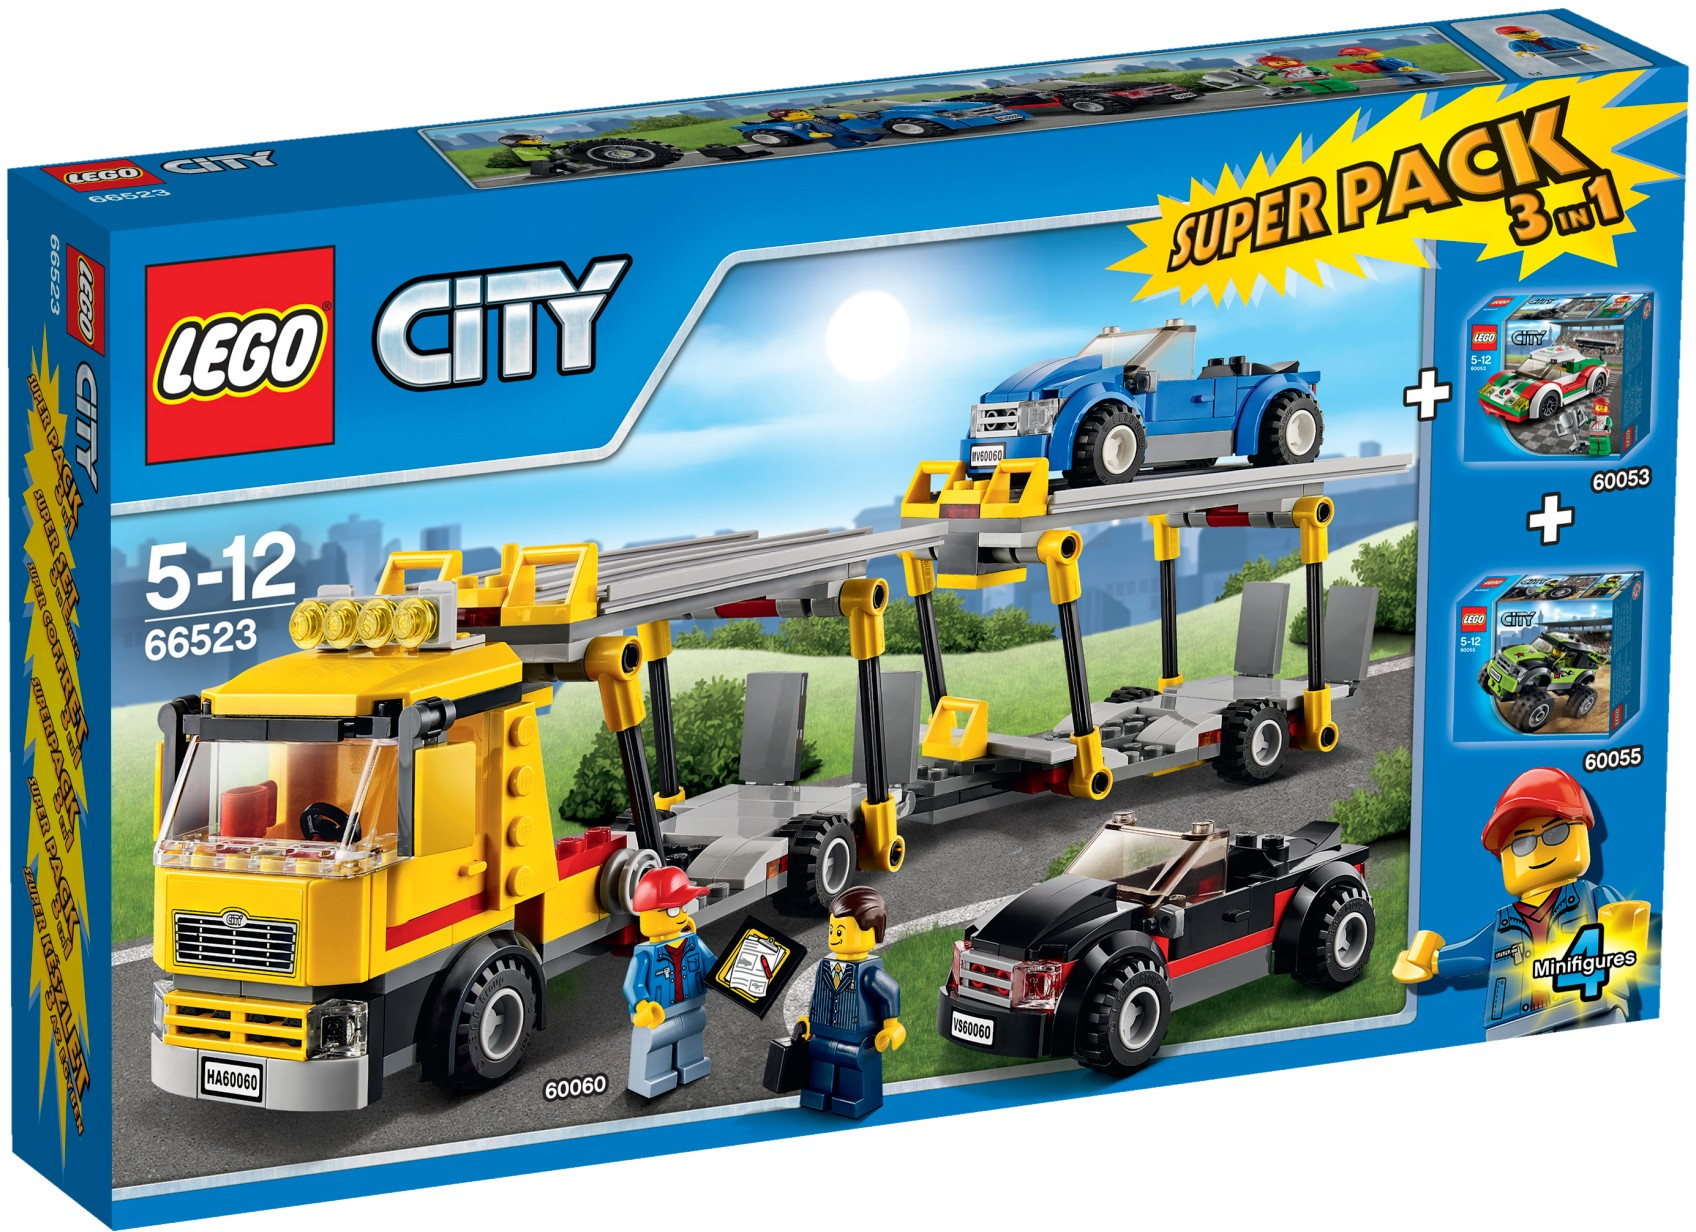 7998 1 Heavy Hauler Brickset Lego Set Guide And Database City 2015 Sets Www Pixshark Com Images Galleries With A Bite